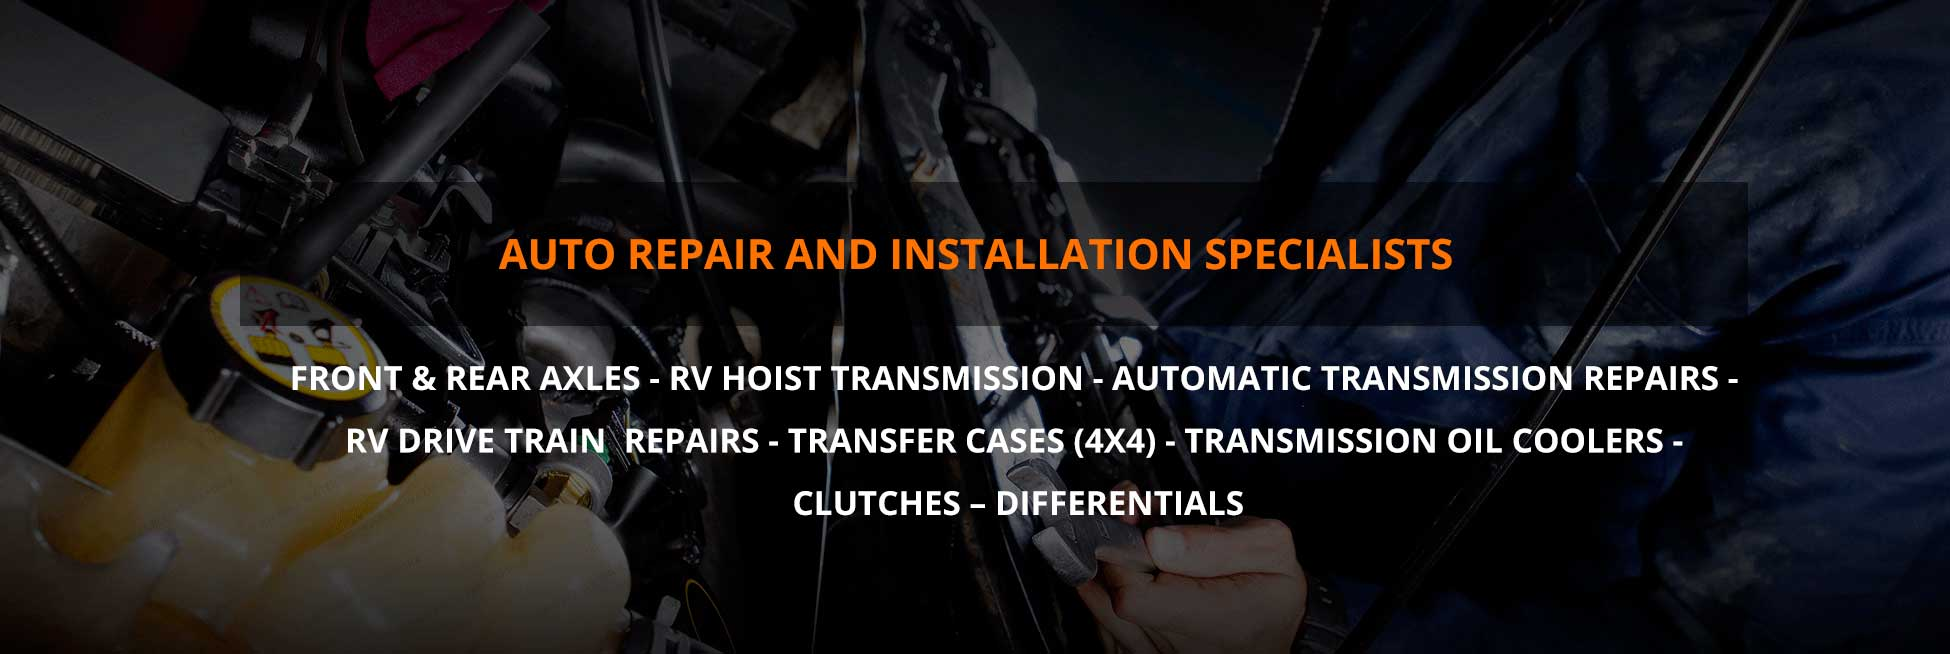 Auto Repair and Installation Specialists